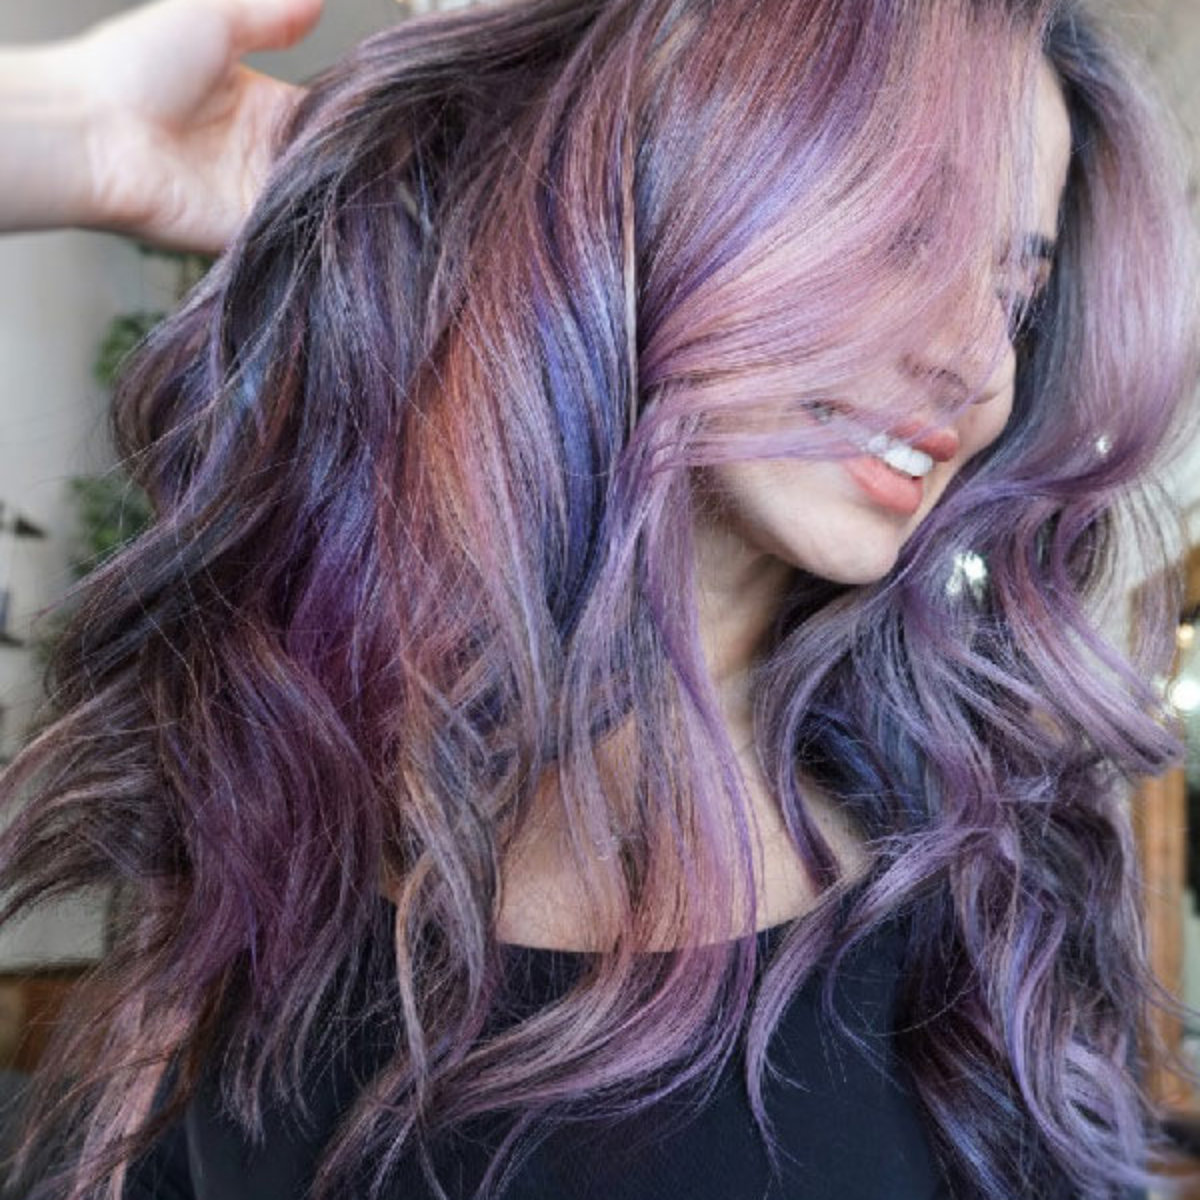 Model with purple hair highlights